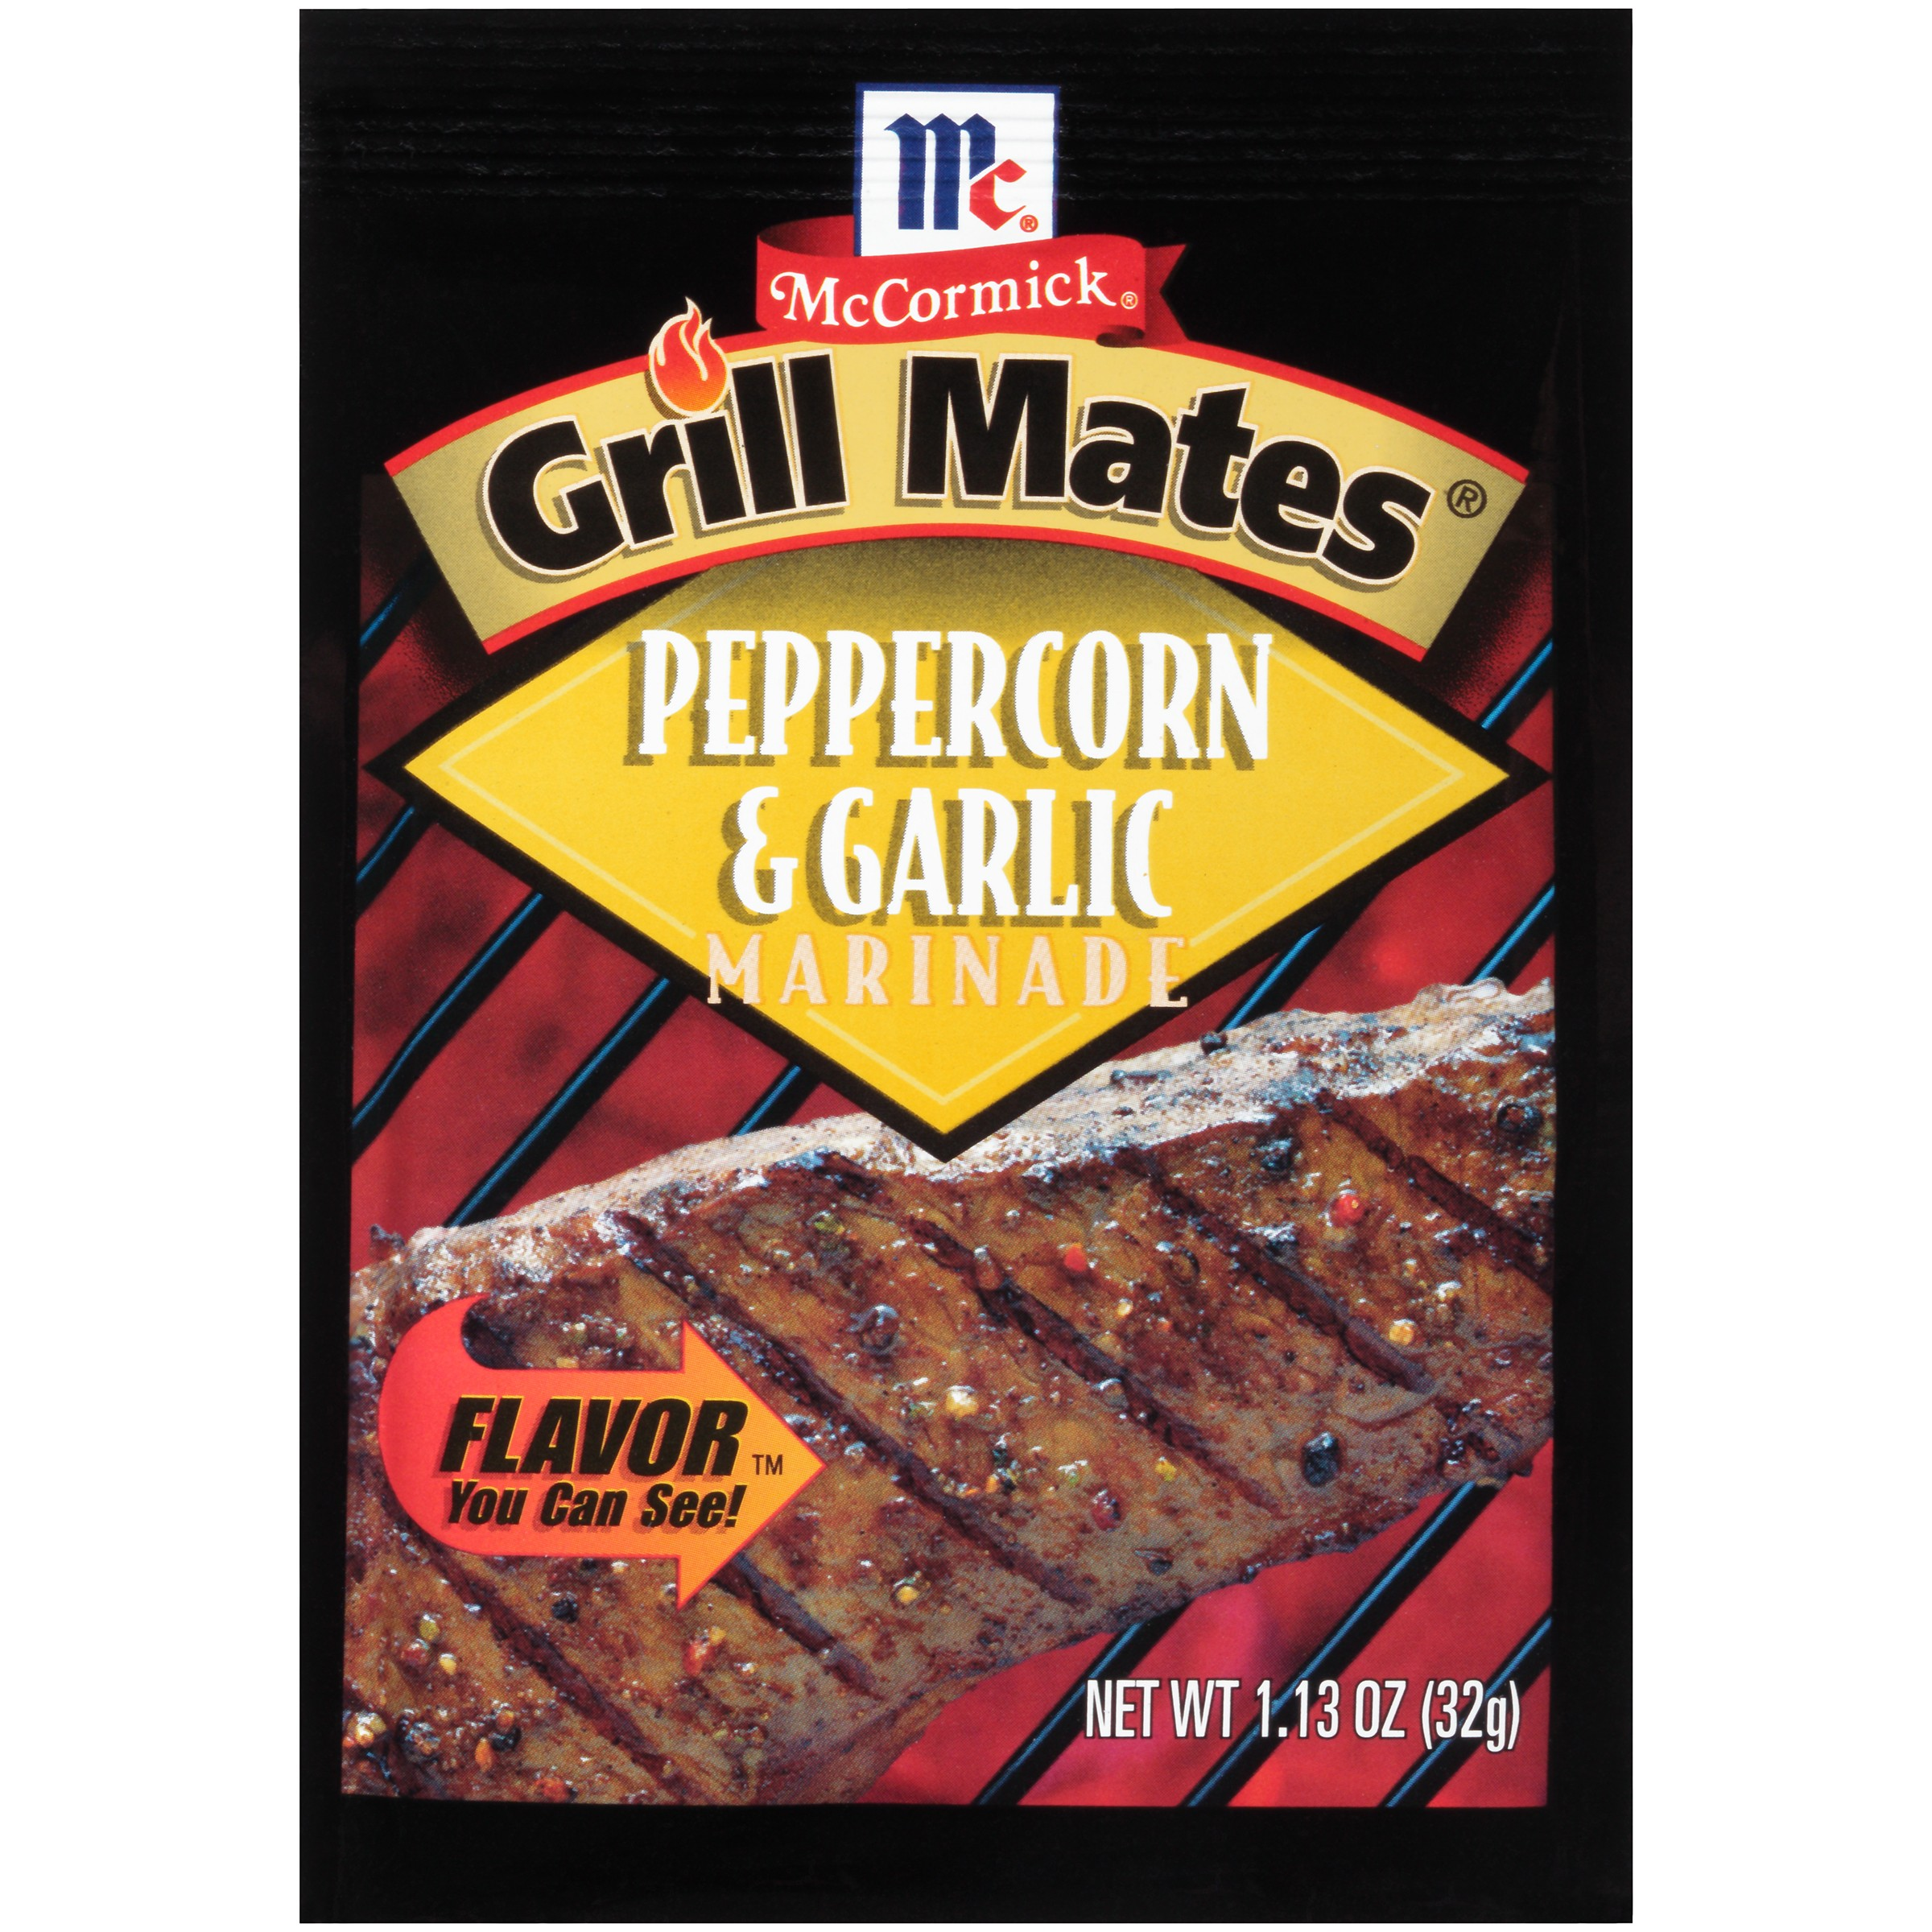 McCormick Grill Mates Peppercorn & Garlic Marinade Seasoning, 1.13 oz